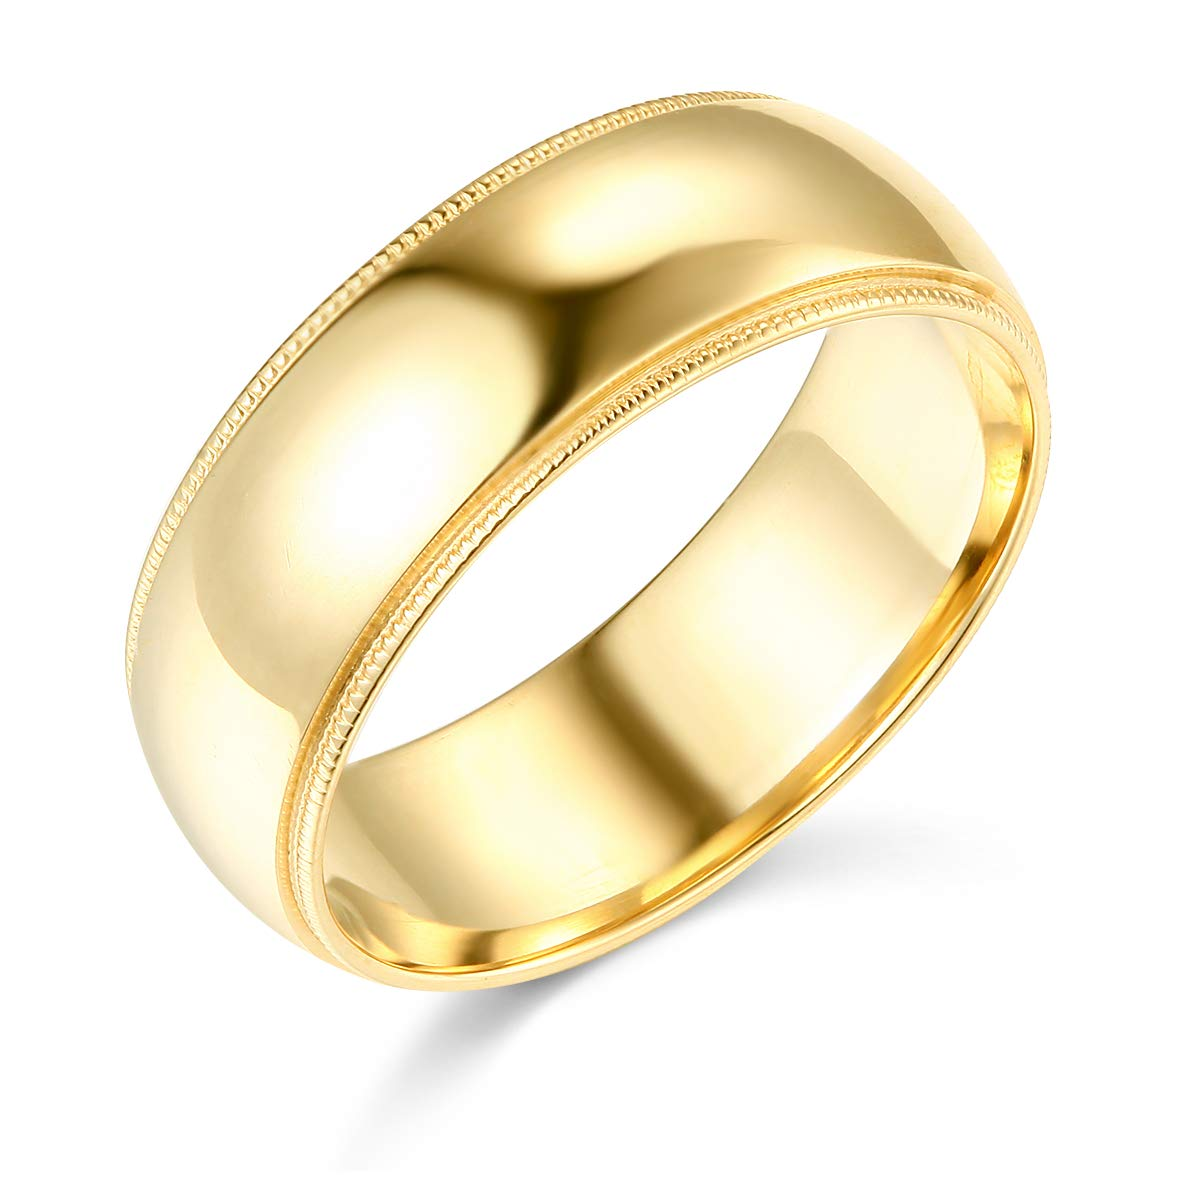 Wellingsale Mens 14k Yellow Gold Solid 7mm COMFORT FIT Milgrain Traditional Wedding Band Ring - Size 8.5 by Wellingsale